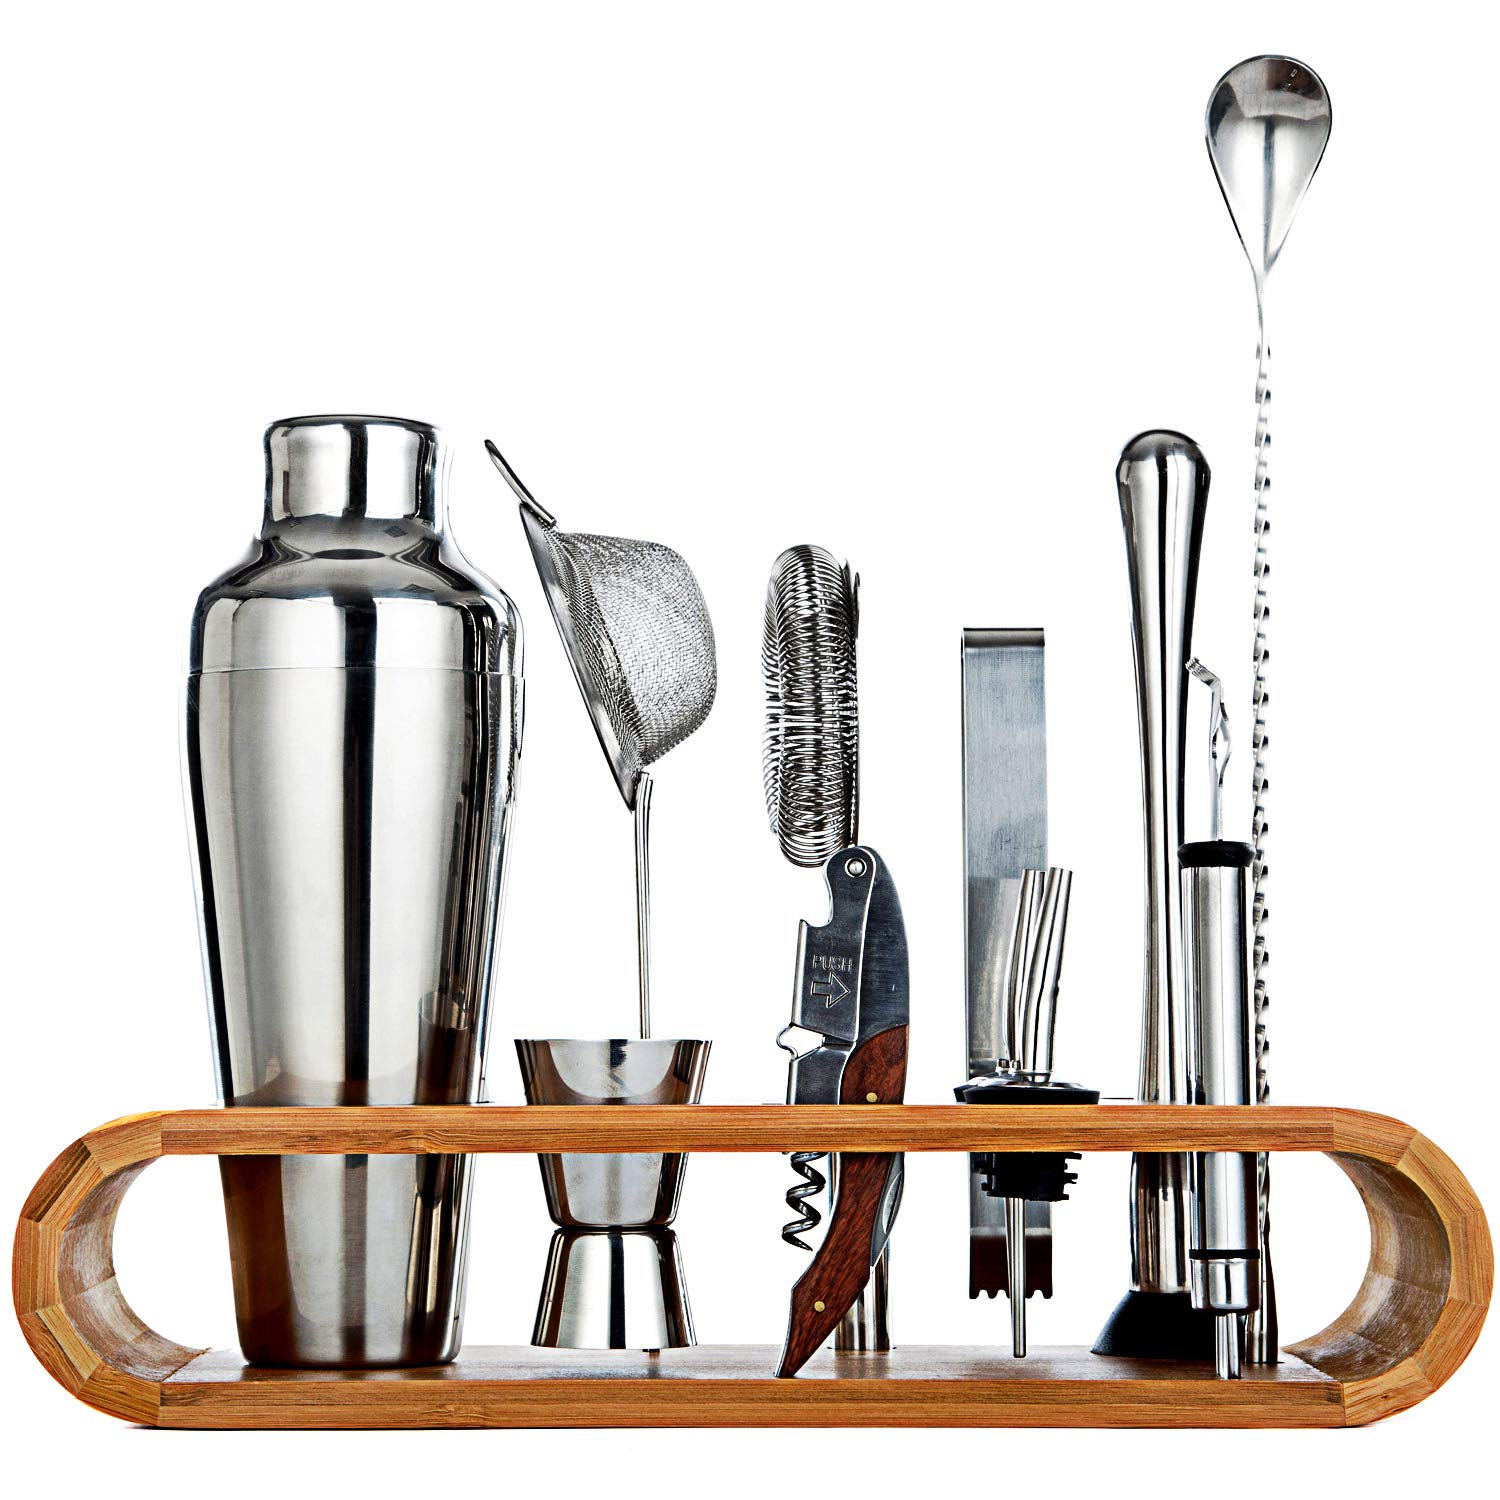 Jillmo Pro Bartender Kit-11pieces Premium Bar Tools with Stylish Bamboo Stand-Perfect Home Bartending Kit and Cocktail Shaker Set/19oz Parisian Cocktail Shaker with bar Accessories